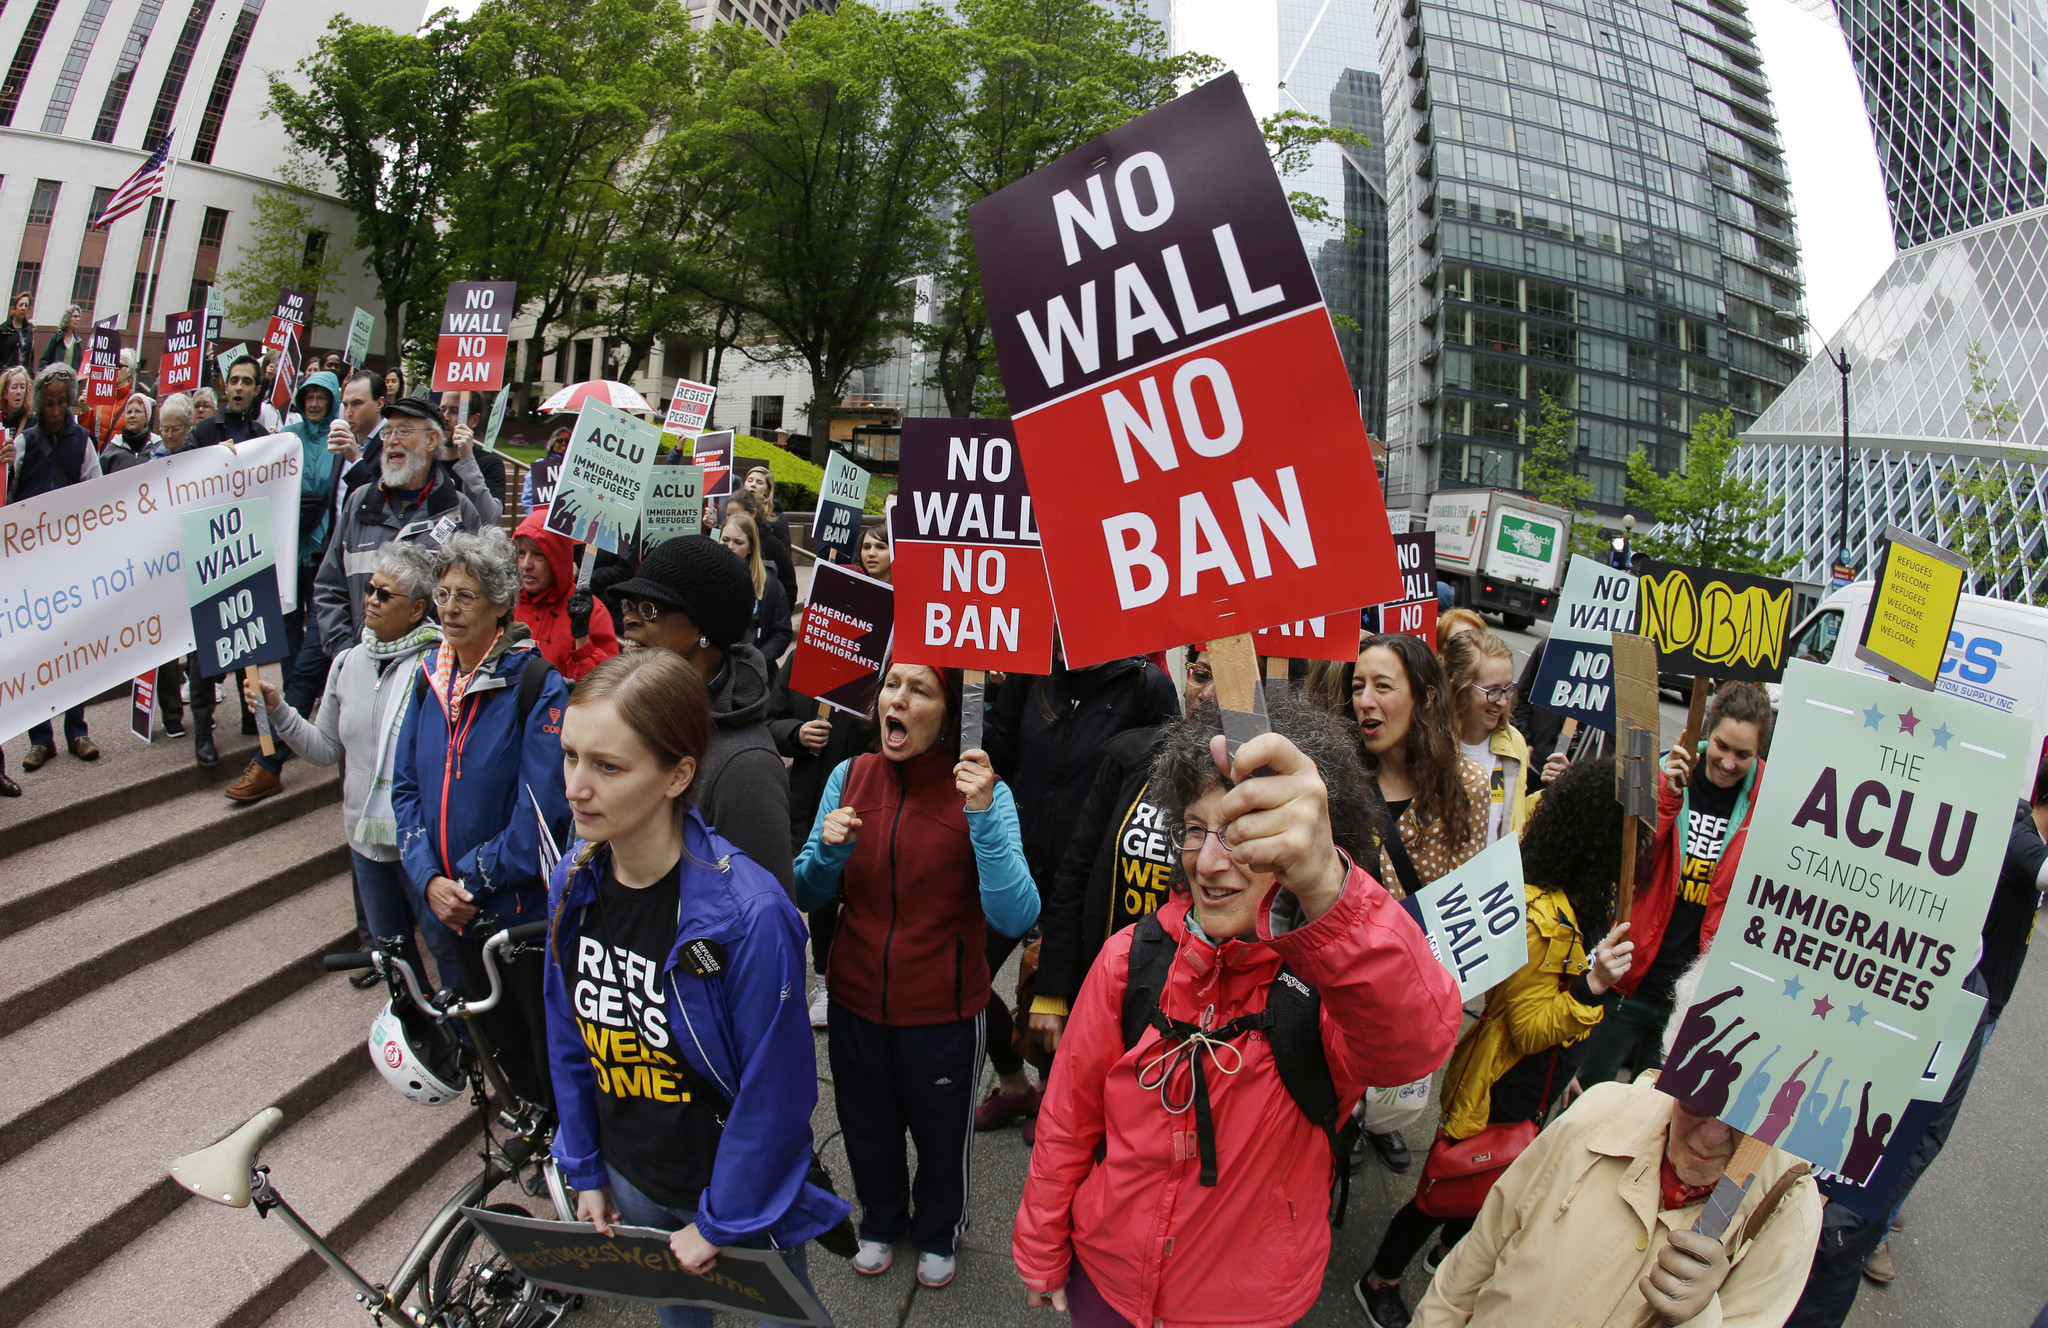 Supreme Court ruling on travel ban leaves myriad questions unanswered